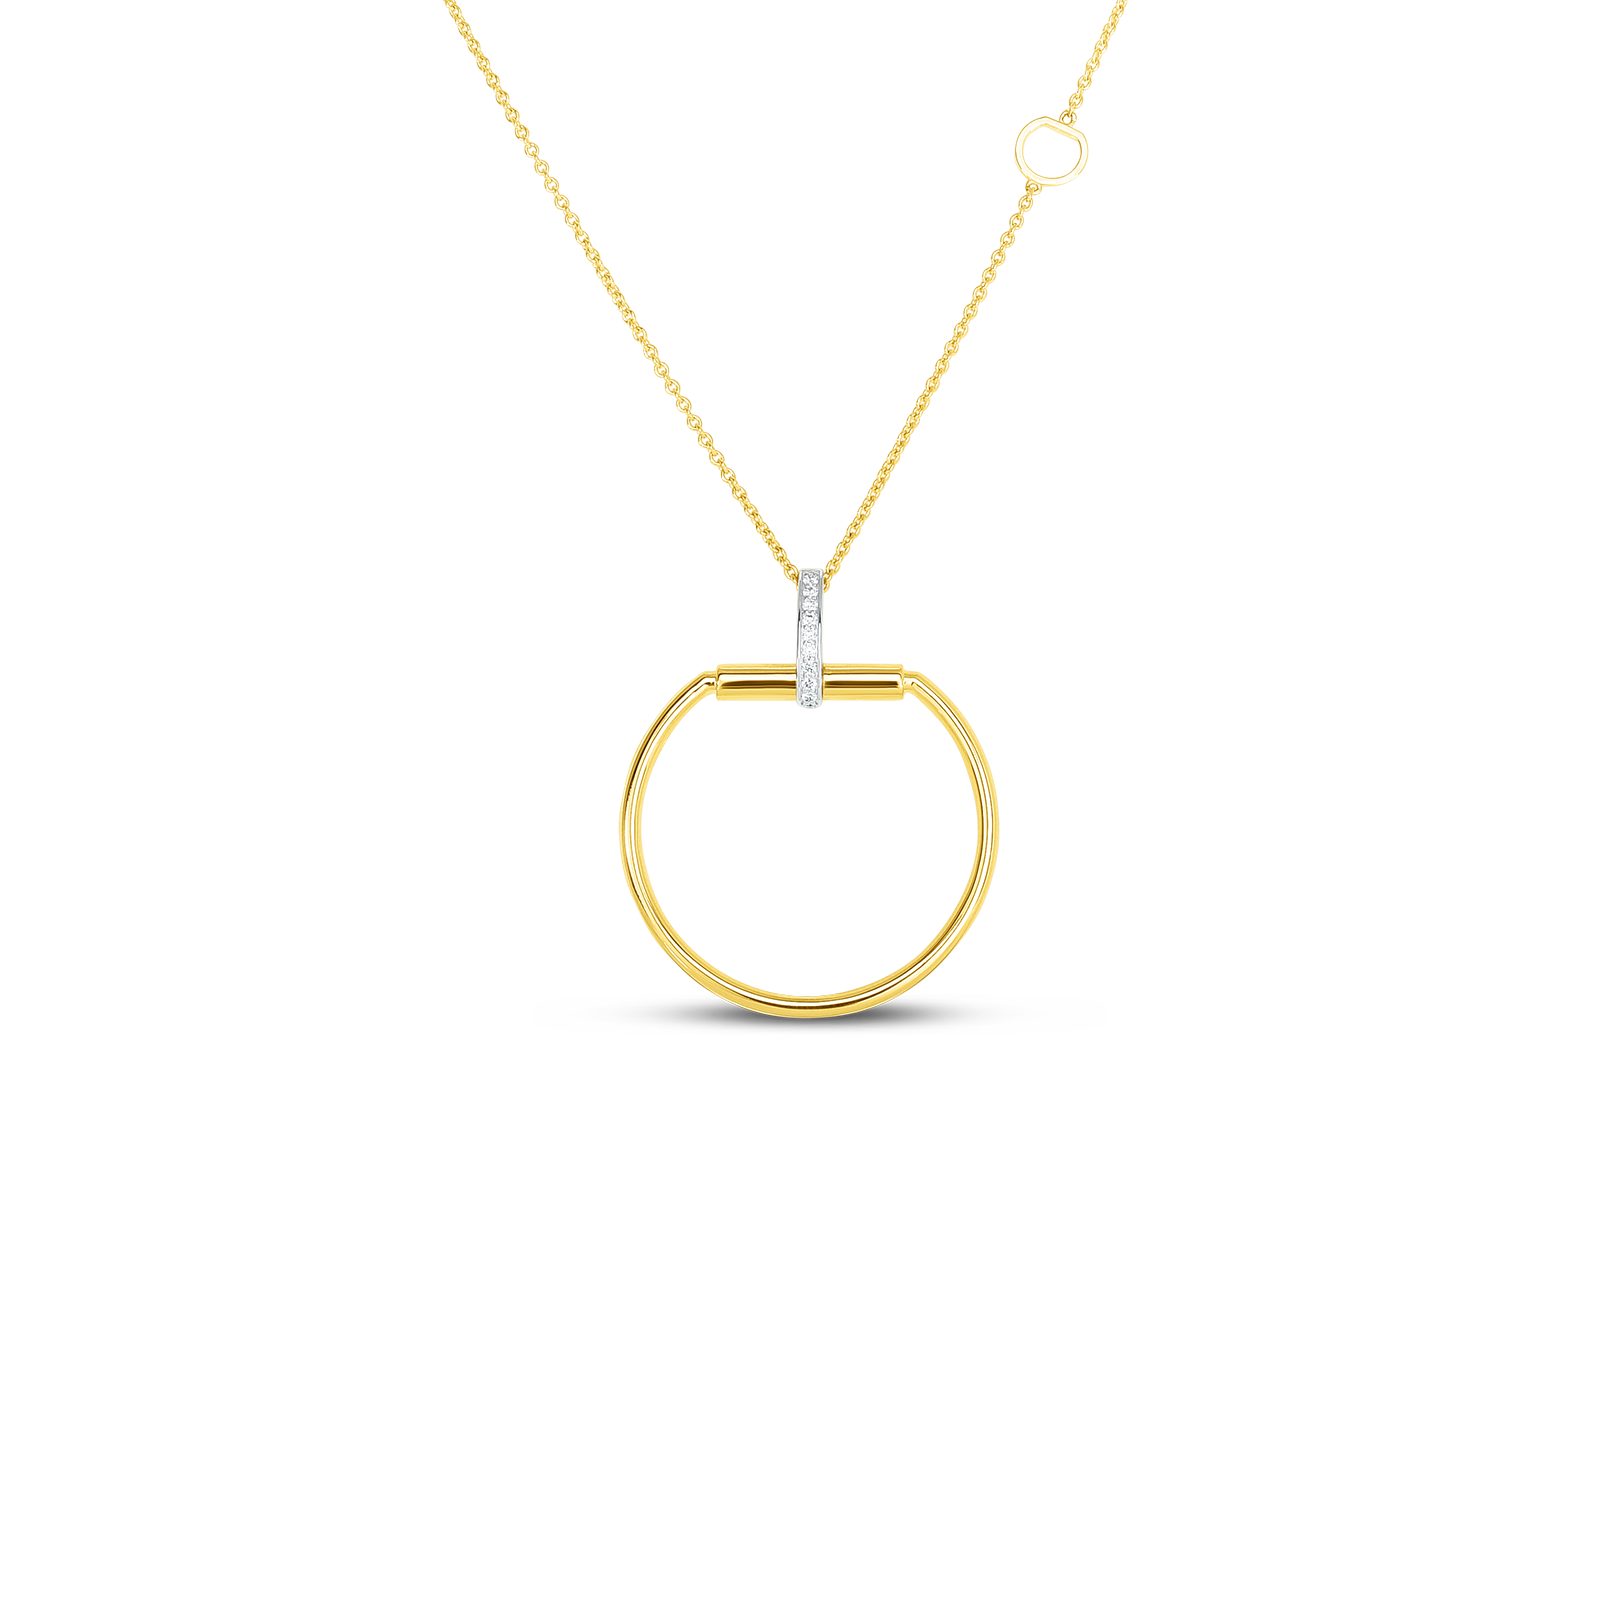 18k tapered stirrup pendant with diamond accent on long chain